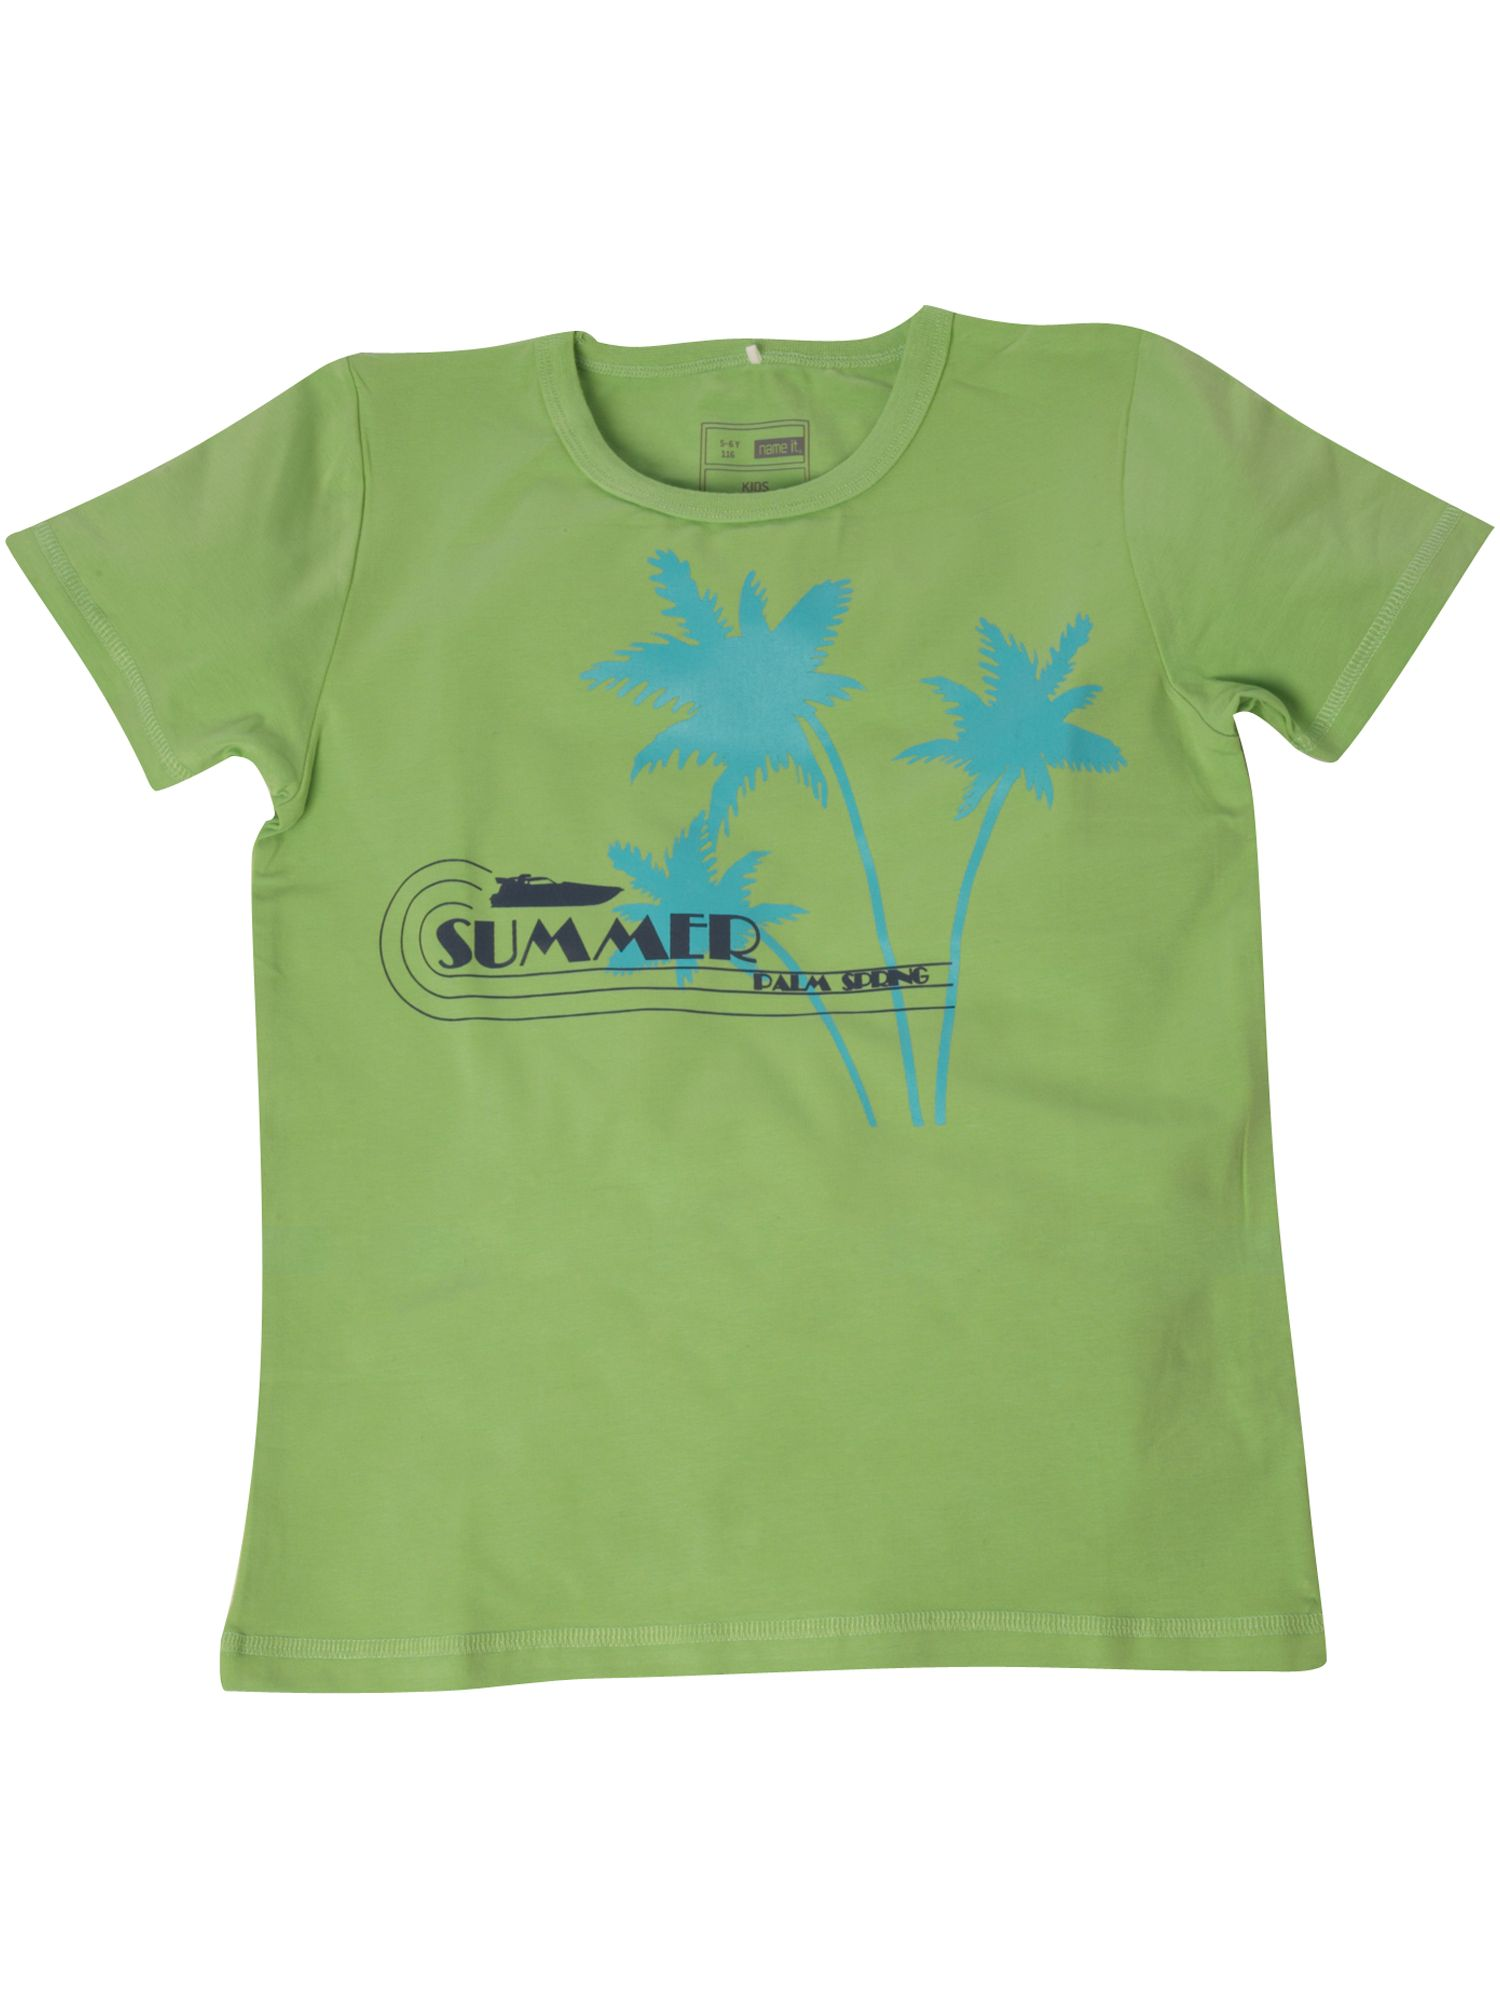 name it Short-sleeved palm tree printed T-shirt - Green product image